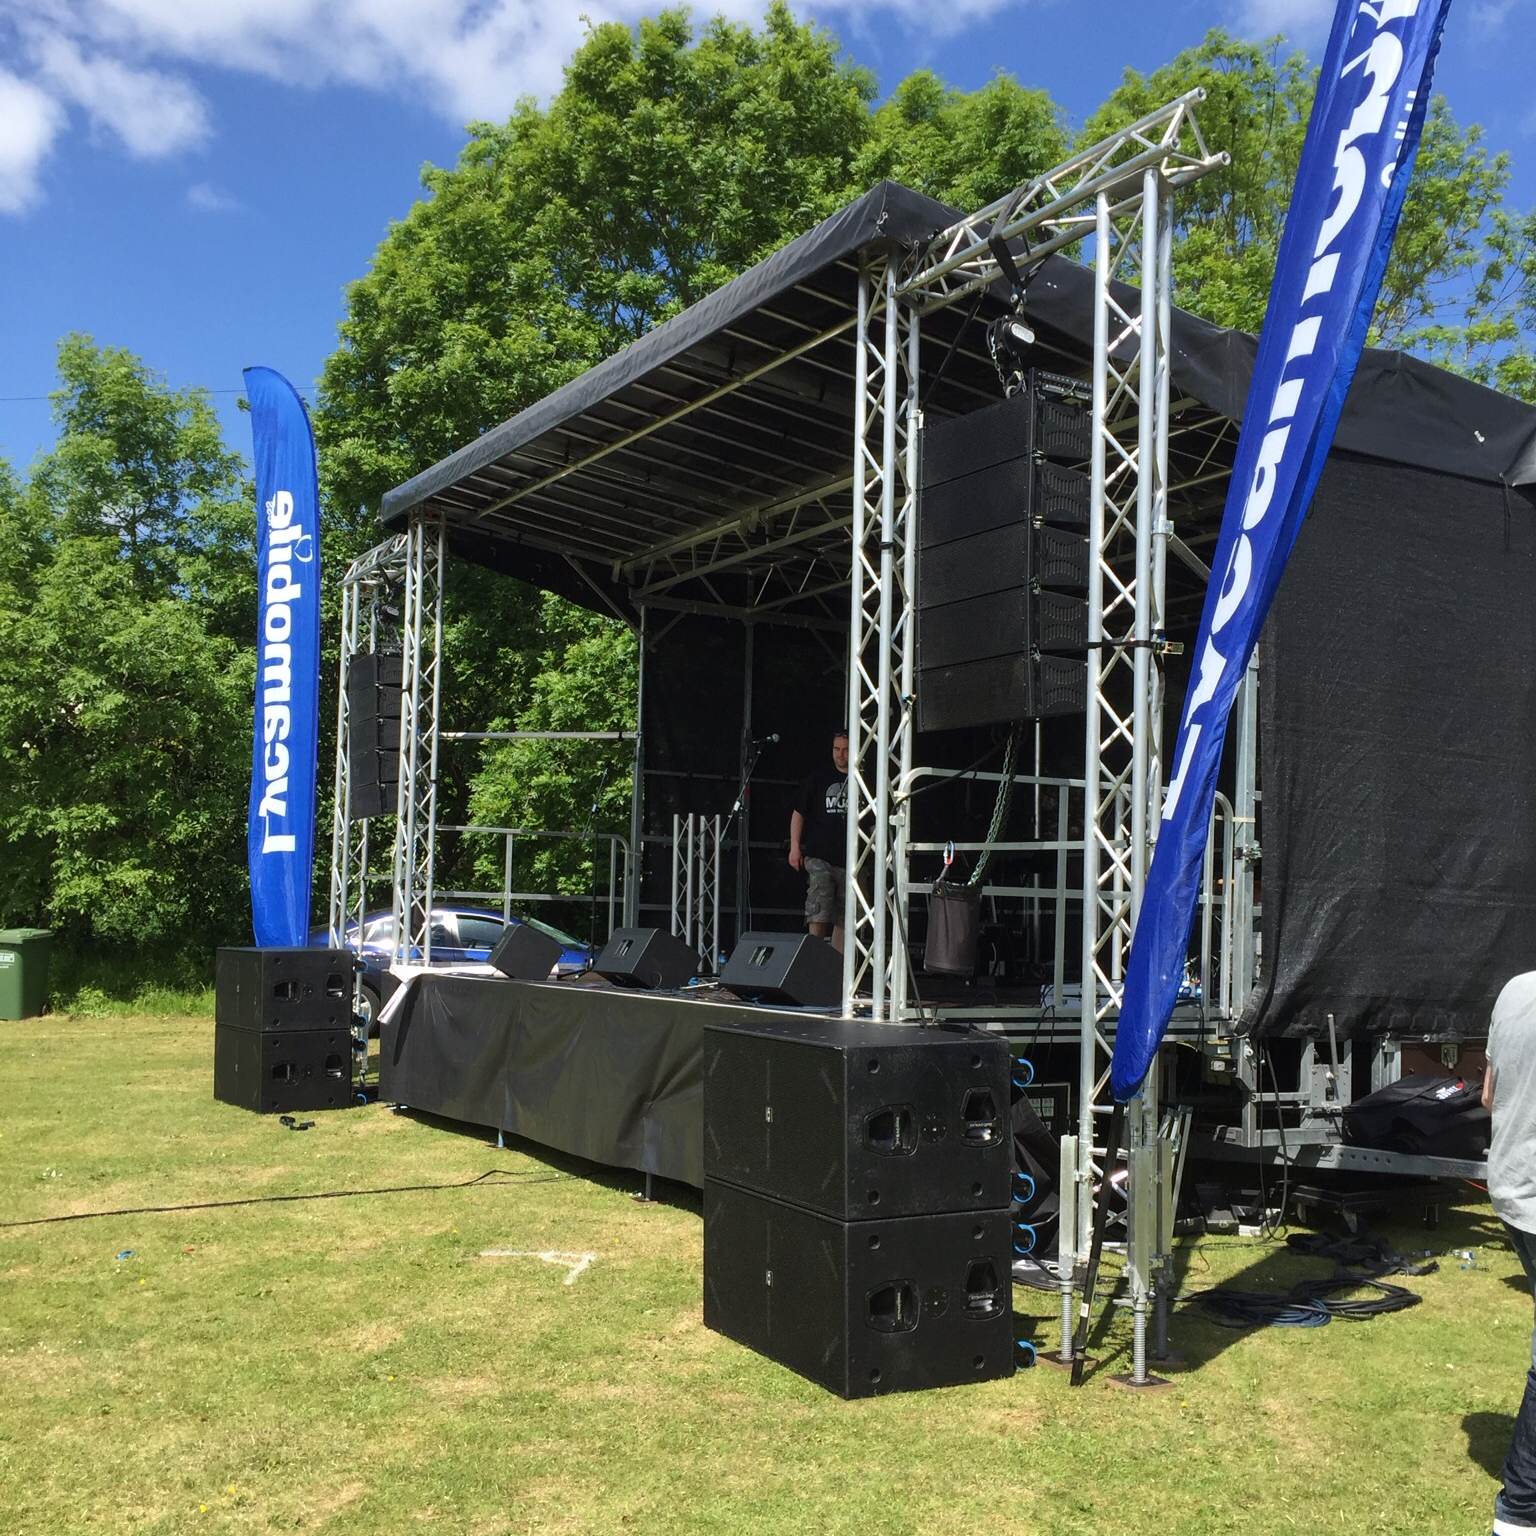 Stage Hire In The UK